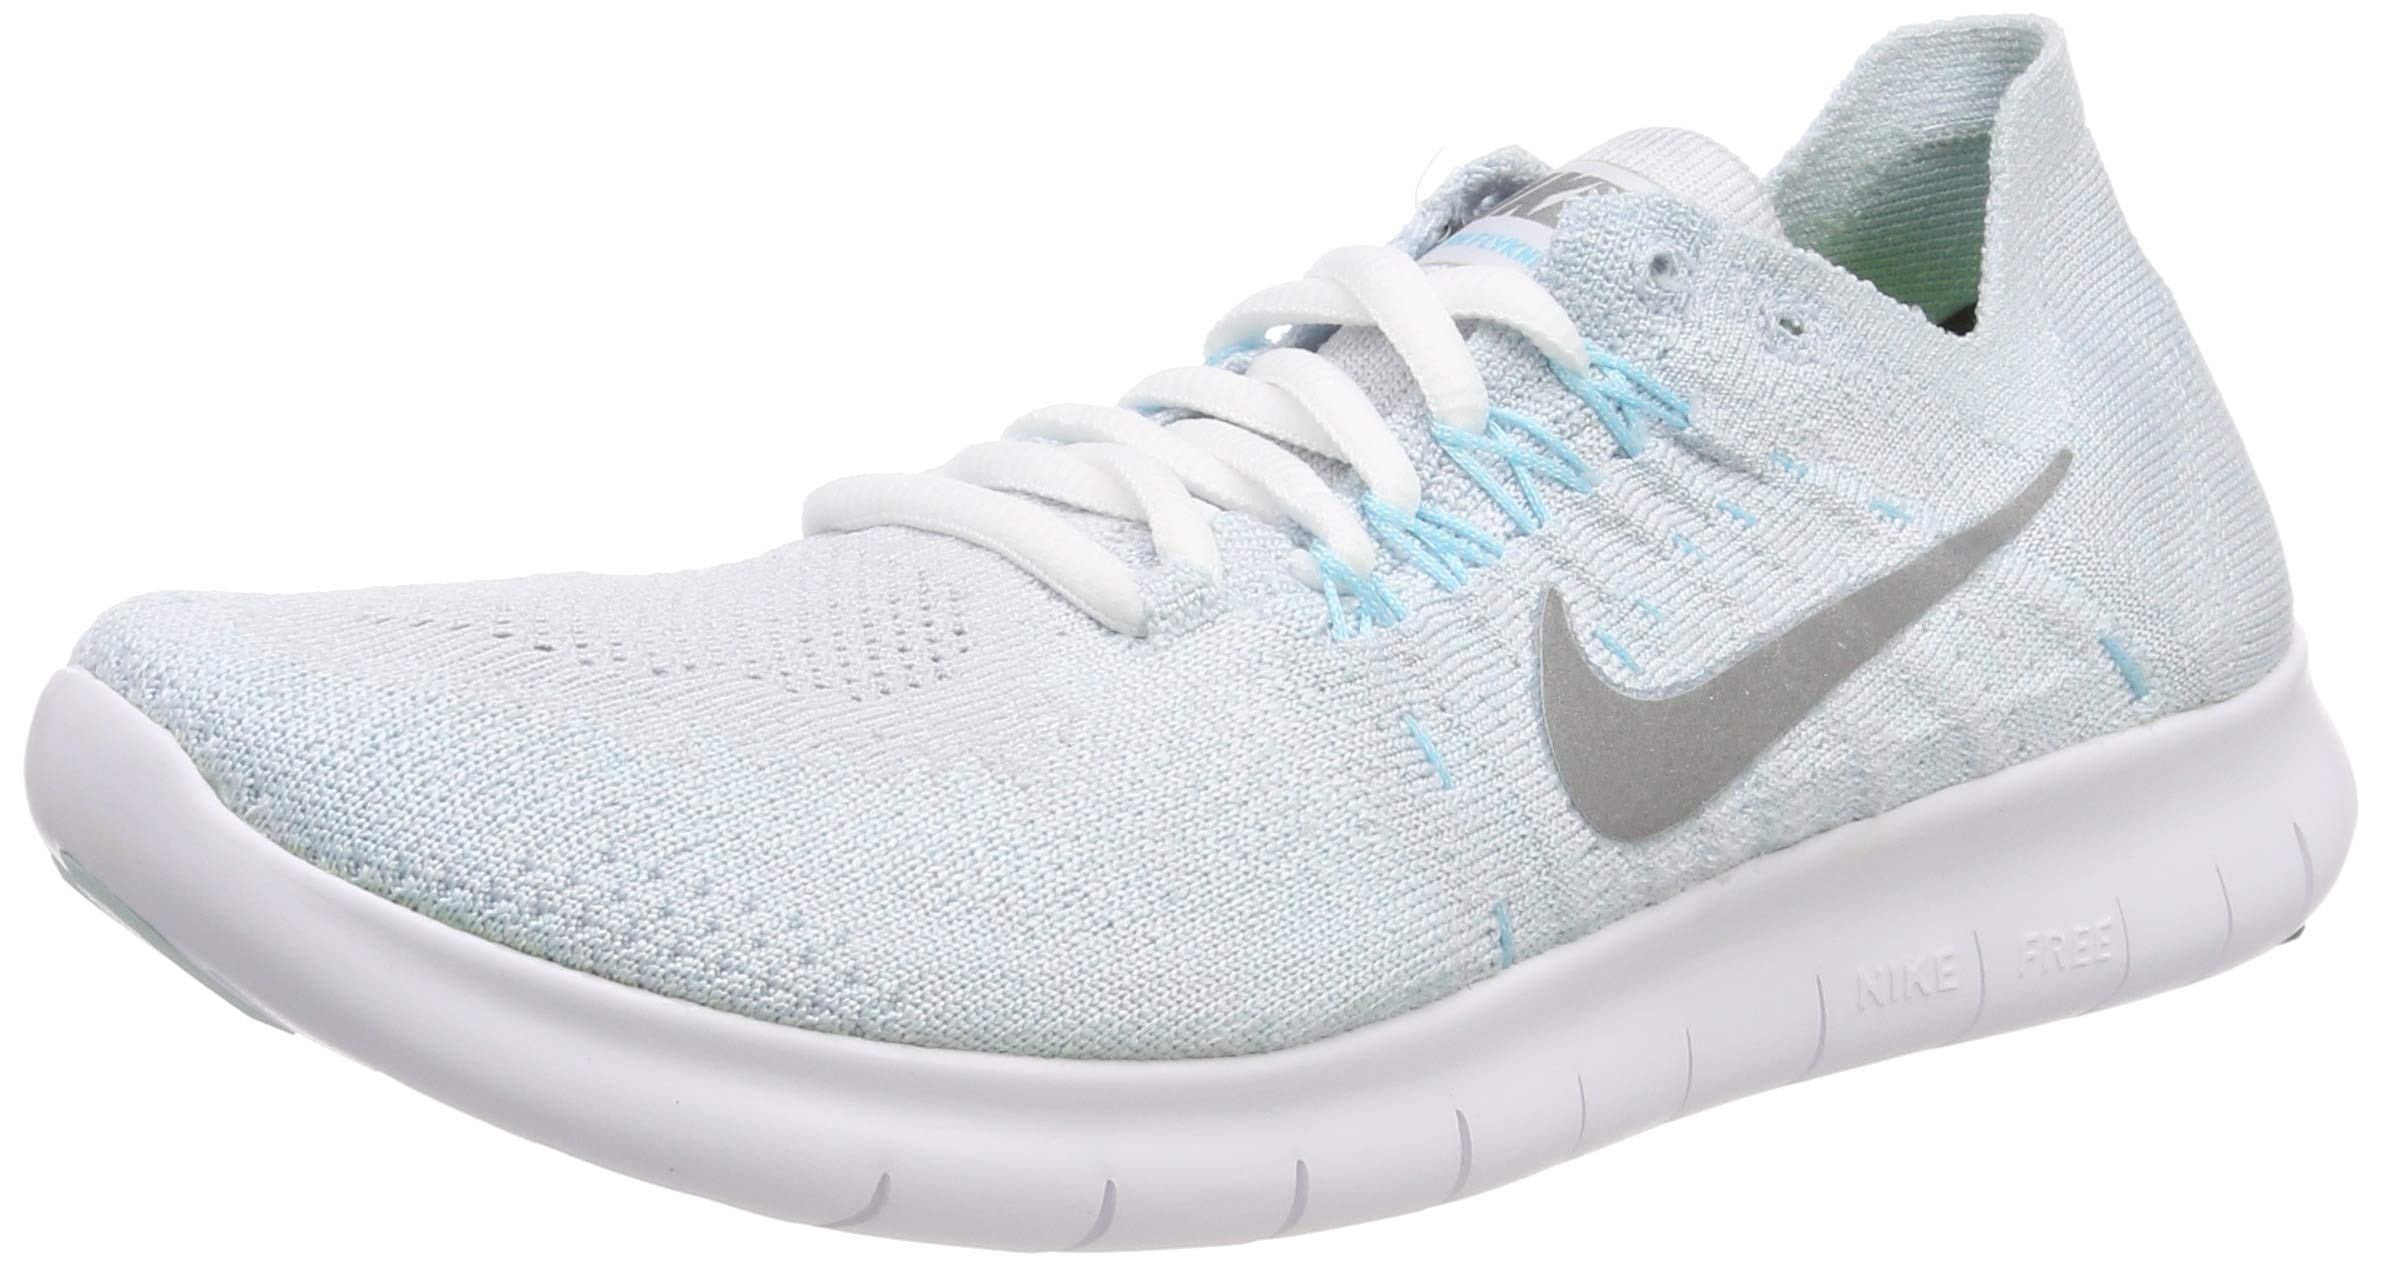 official photos 2699f 4505c Galleon - Nike Women's Free Rn Flyknit Running Shoe (7 M US ...